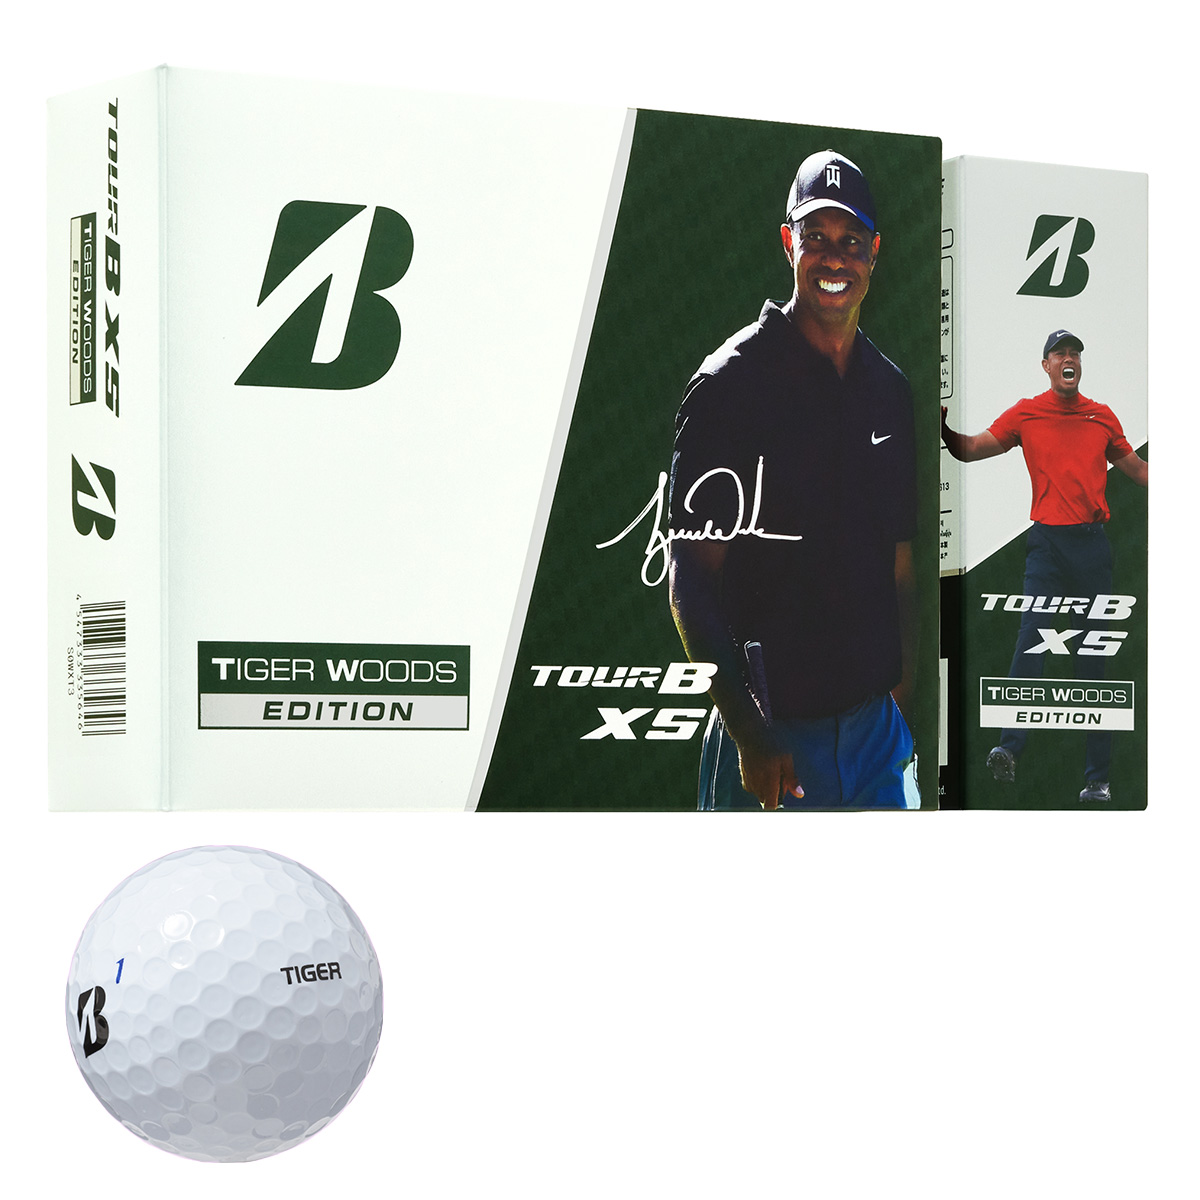 TOUR B XS Tiger Woods 2020 Edition ボール